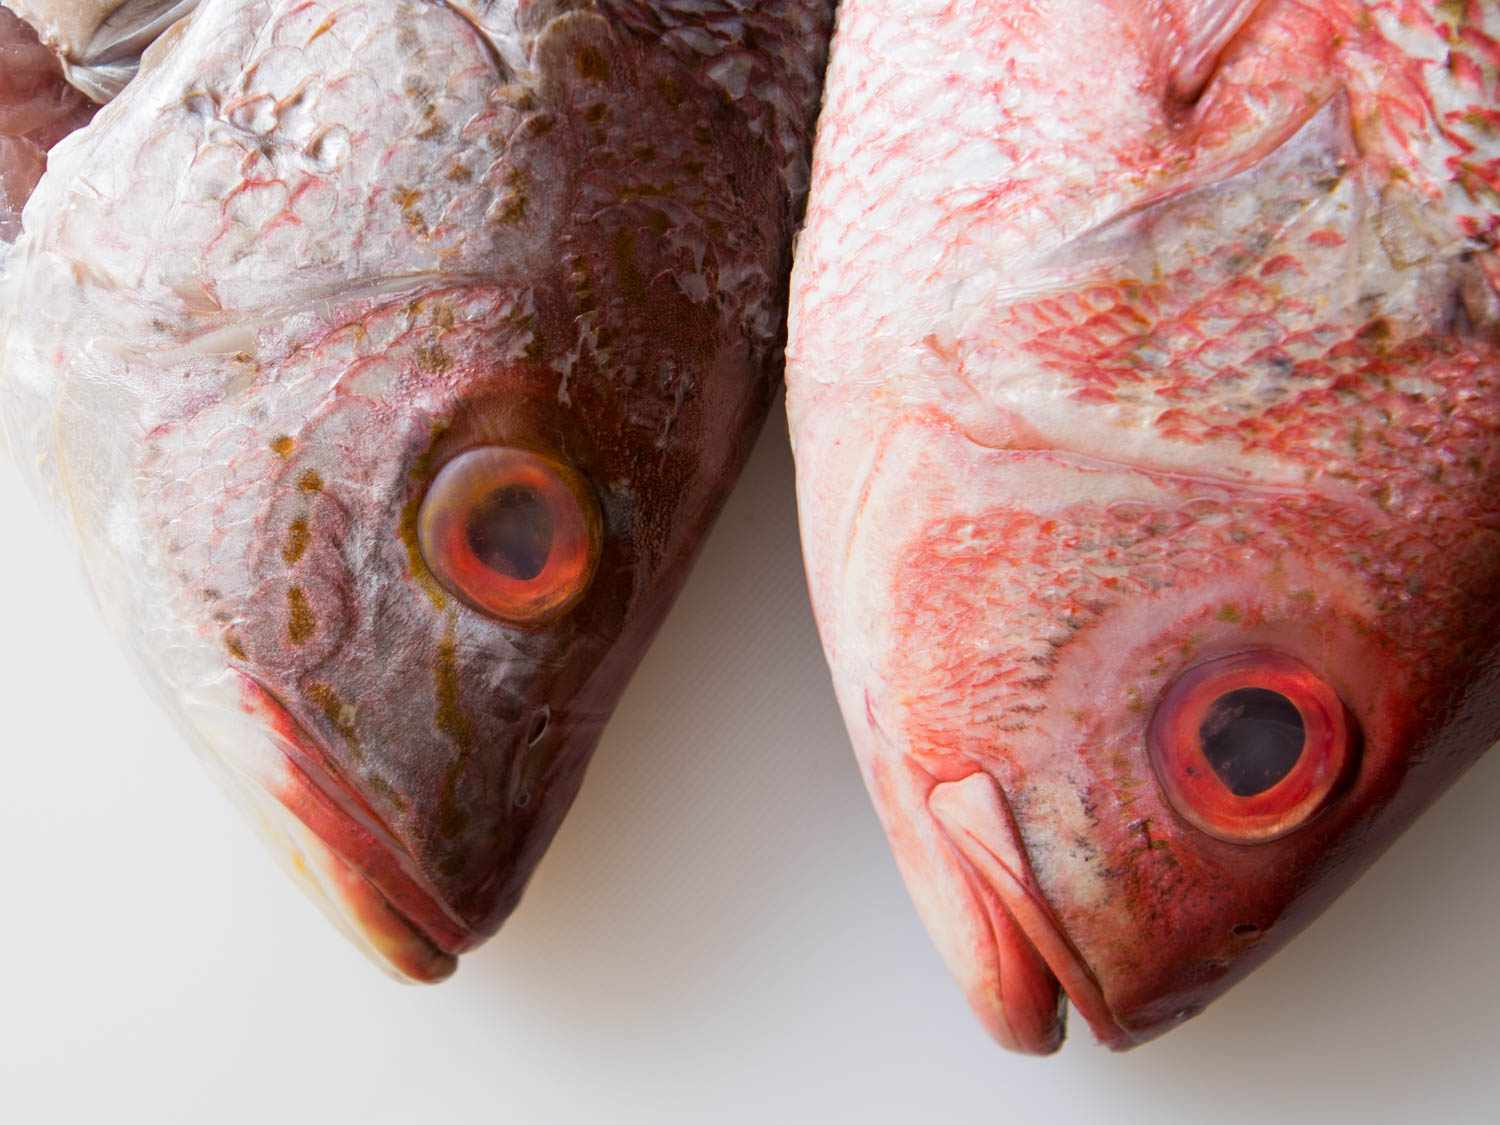 20150922-how-to-fillet-fish-1.jpg